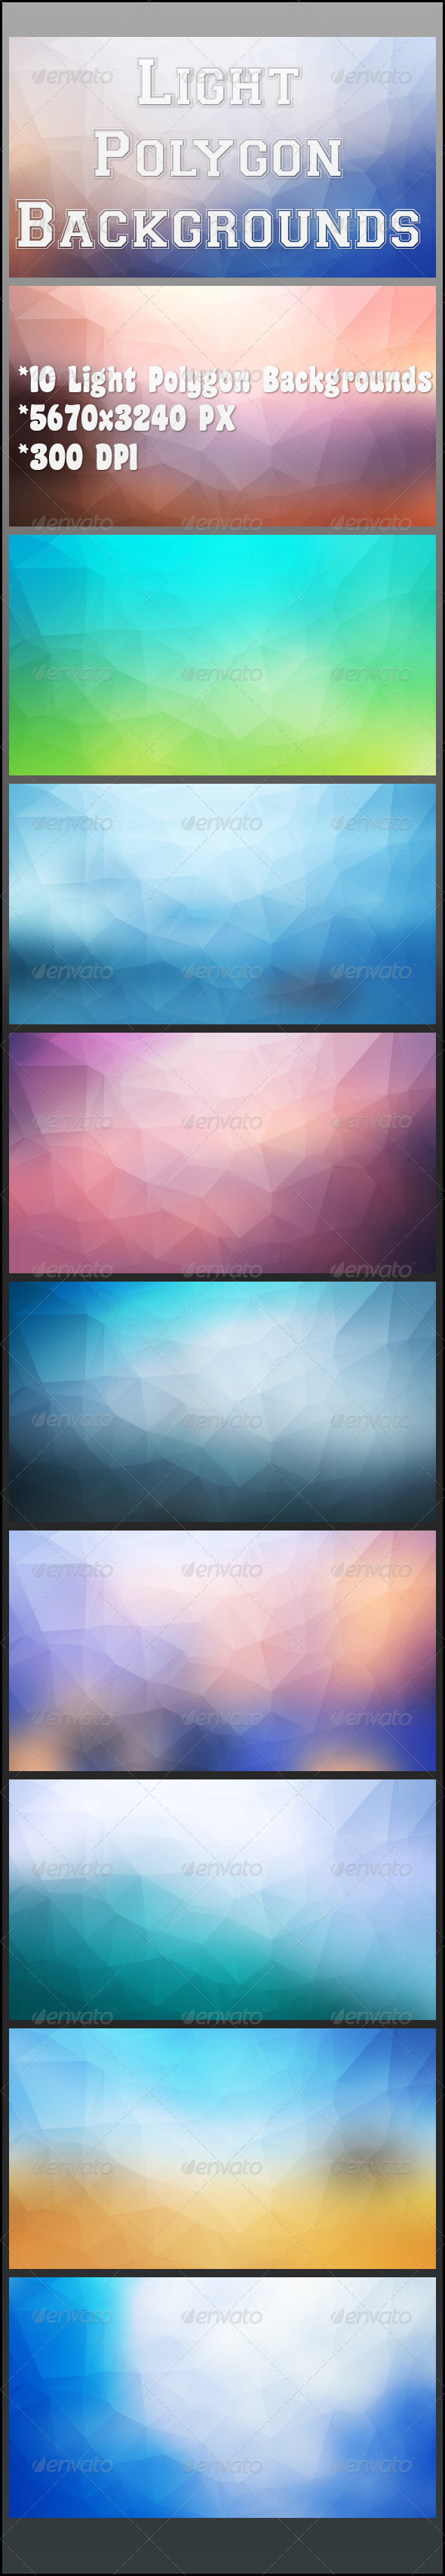 Light Polygon Backgrounds